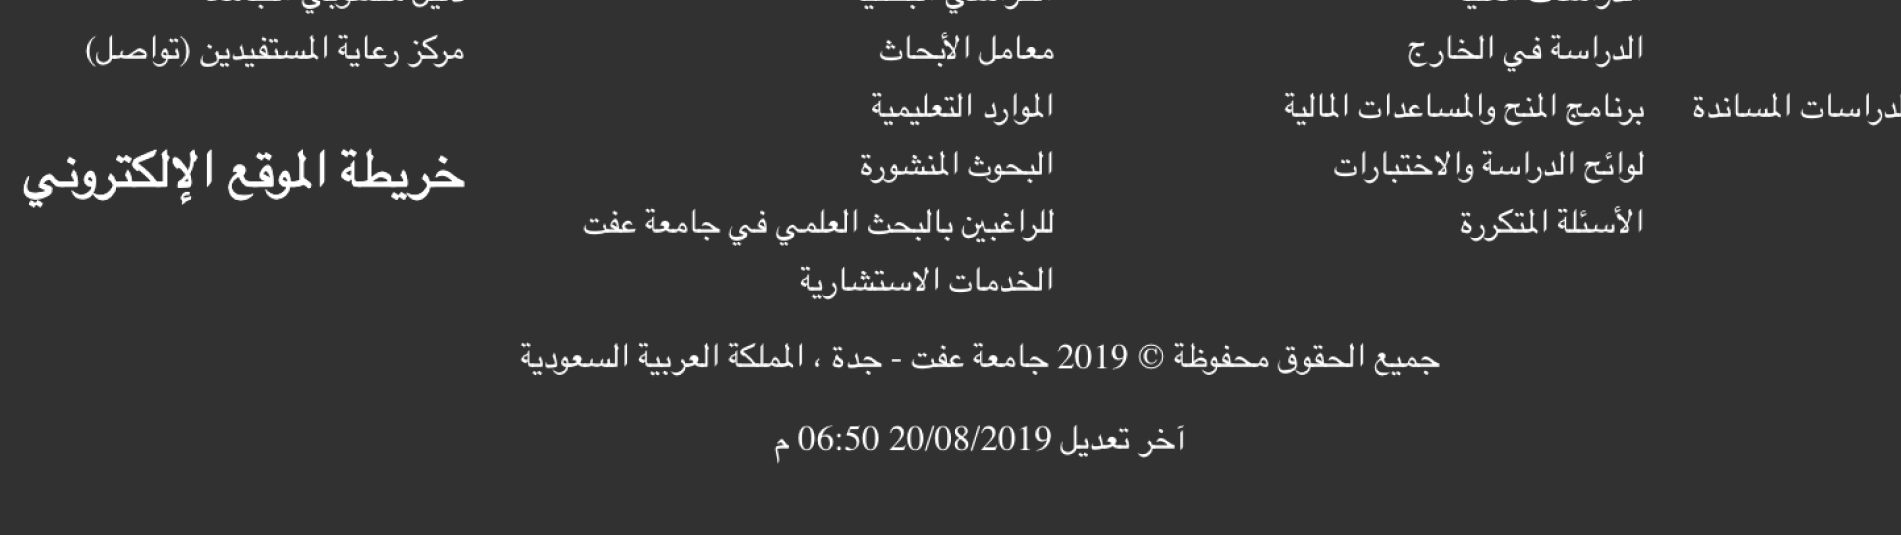 "A footer of a website showing the copyright information at the bottom in Arabic but ""2019"" is still in English."